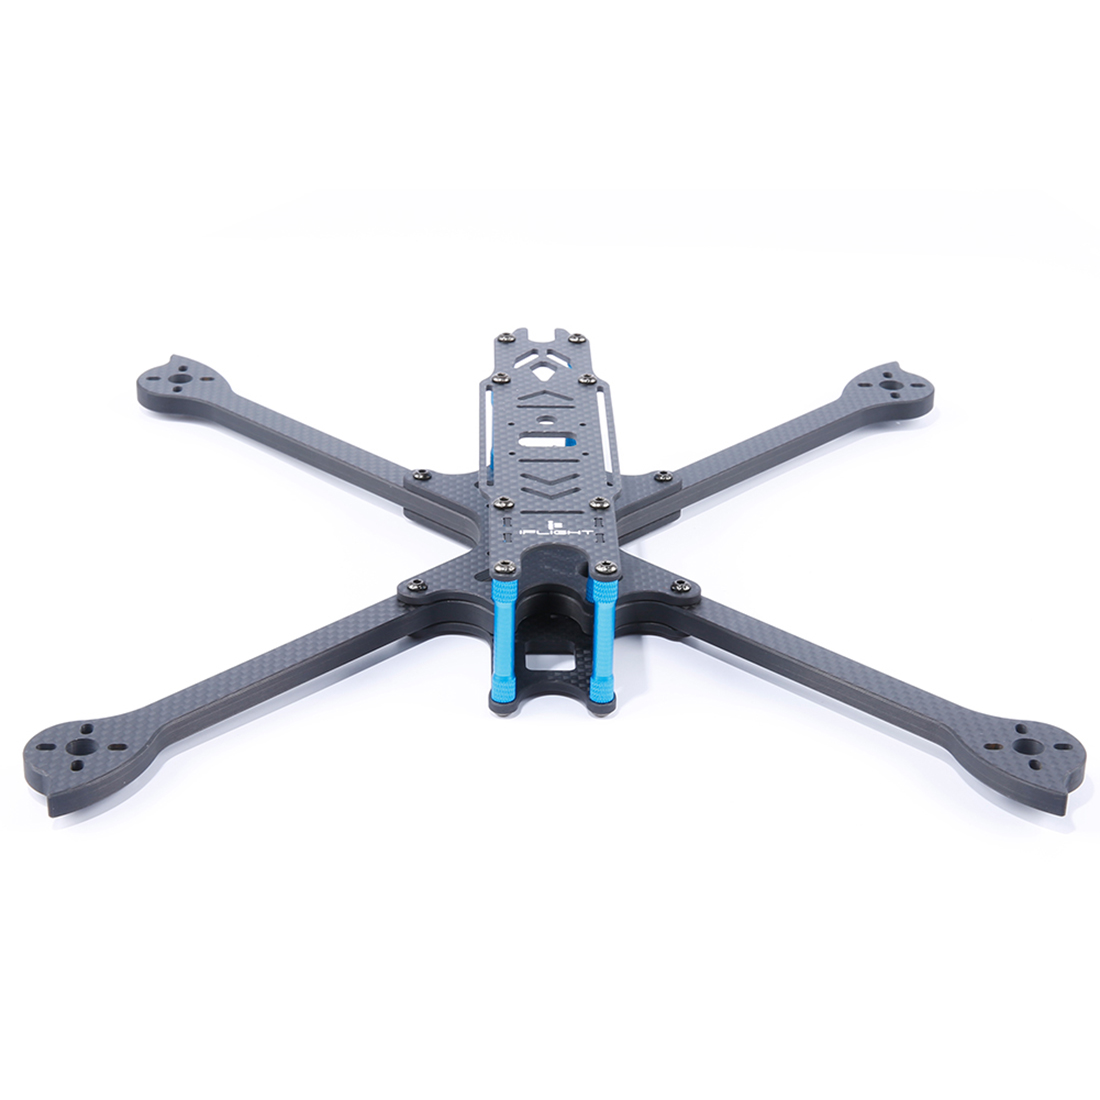 IFlight XL8 V4 8 Inch 322mm Long Range FPV Frame Carbon Fiber True-X Airframe For DIY Quadcopter FPV Racing Drone